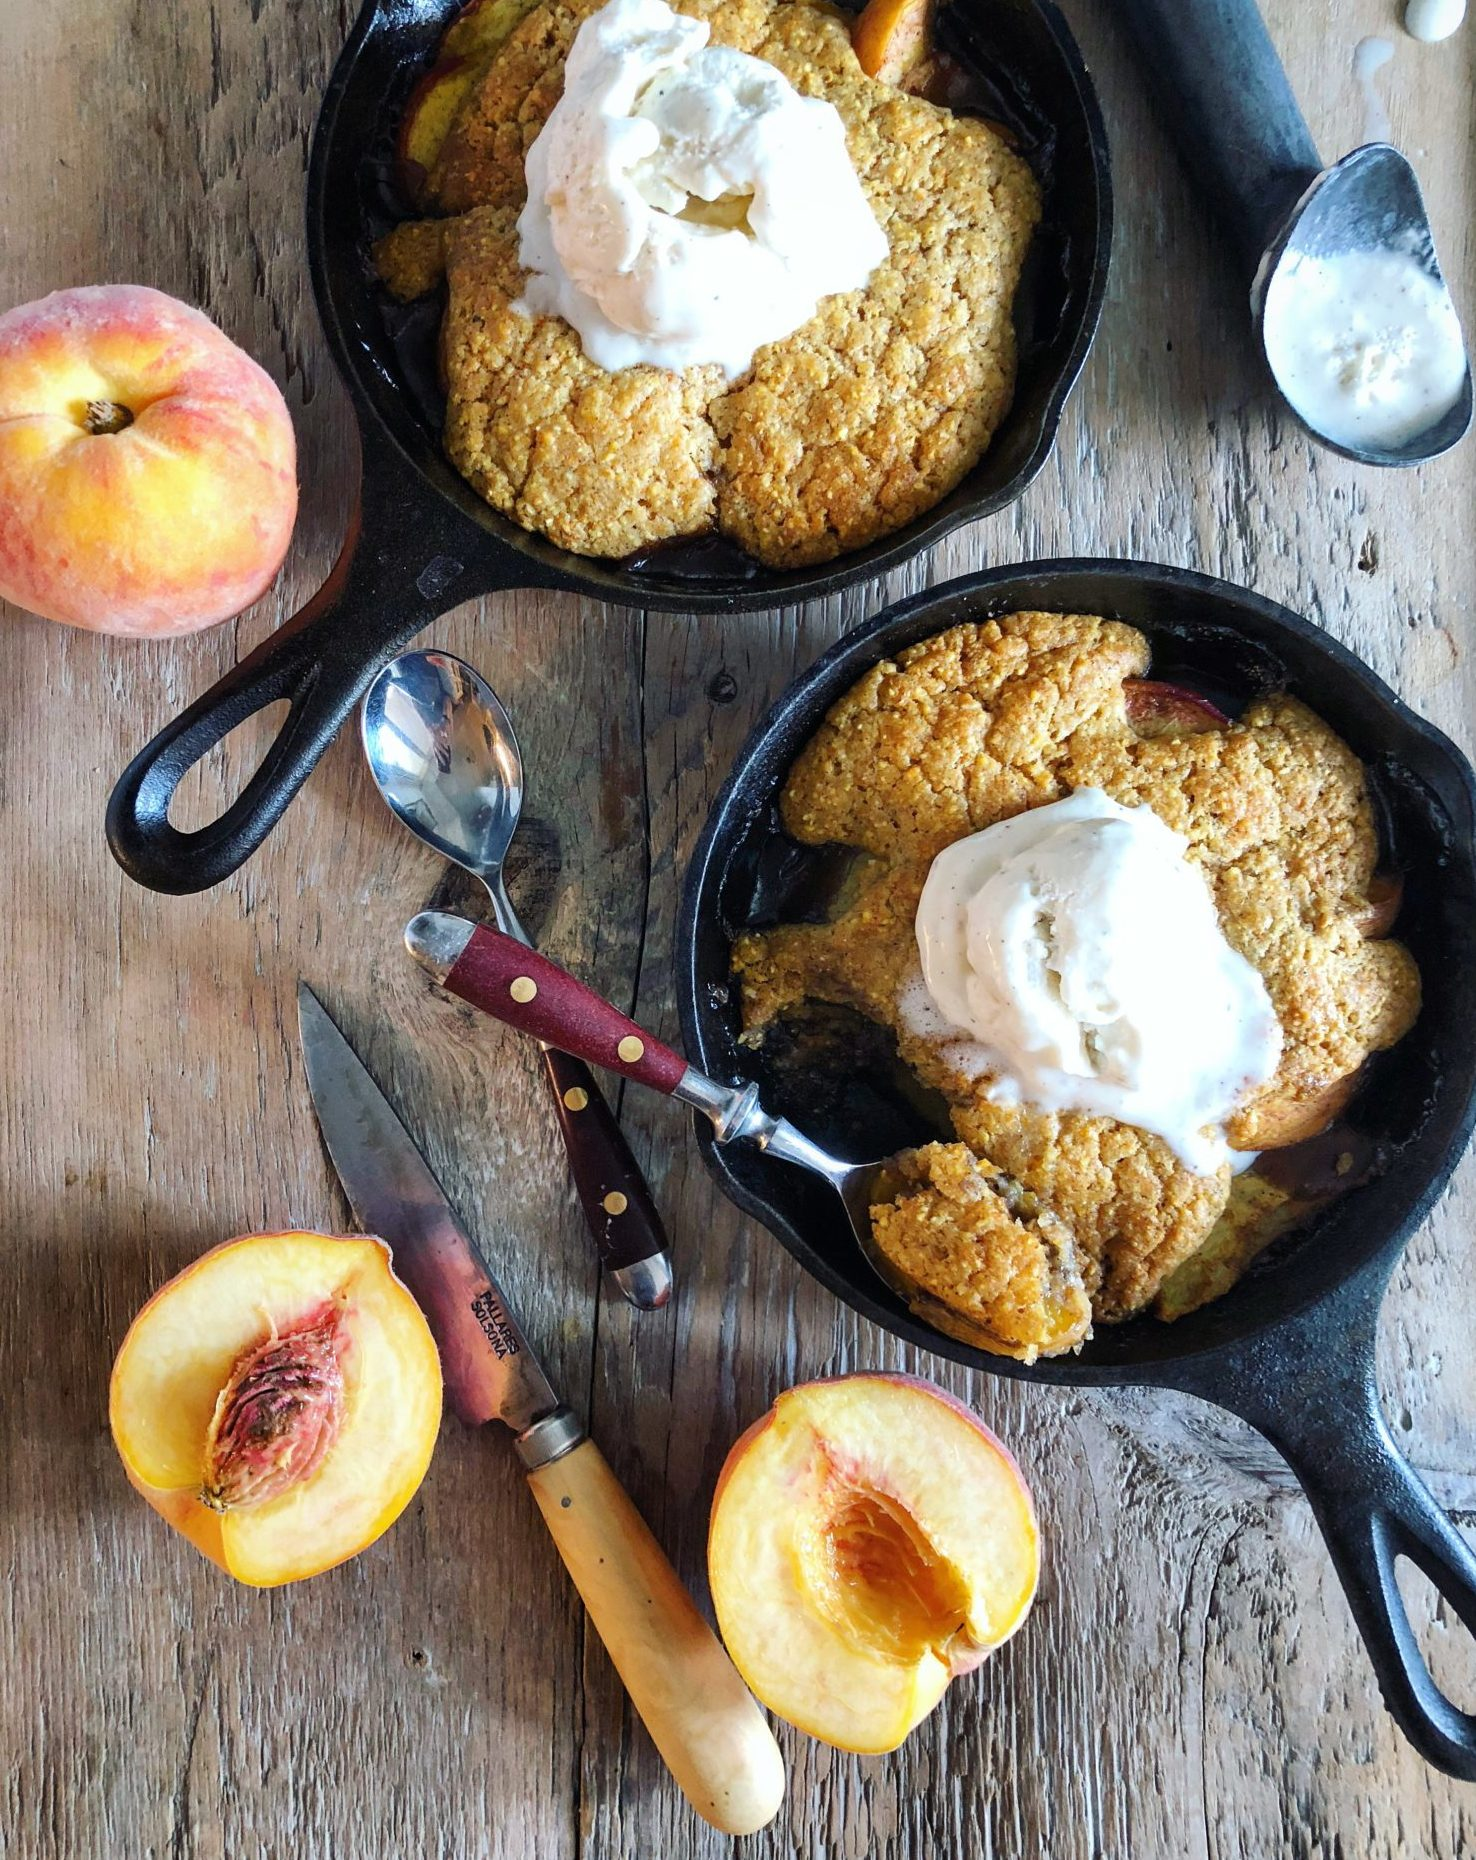 Spicy Maple Bourbon Peach Cobbler with Cornmeal Biscuit Topping